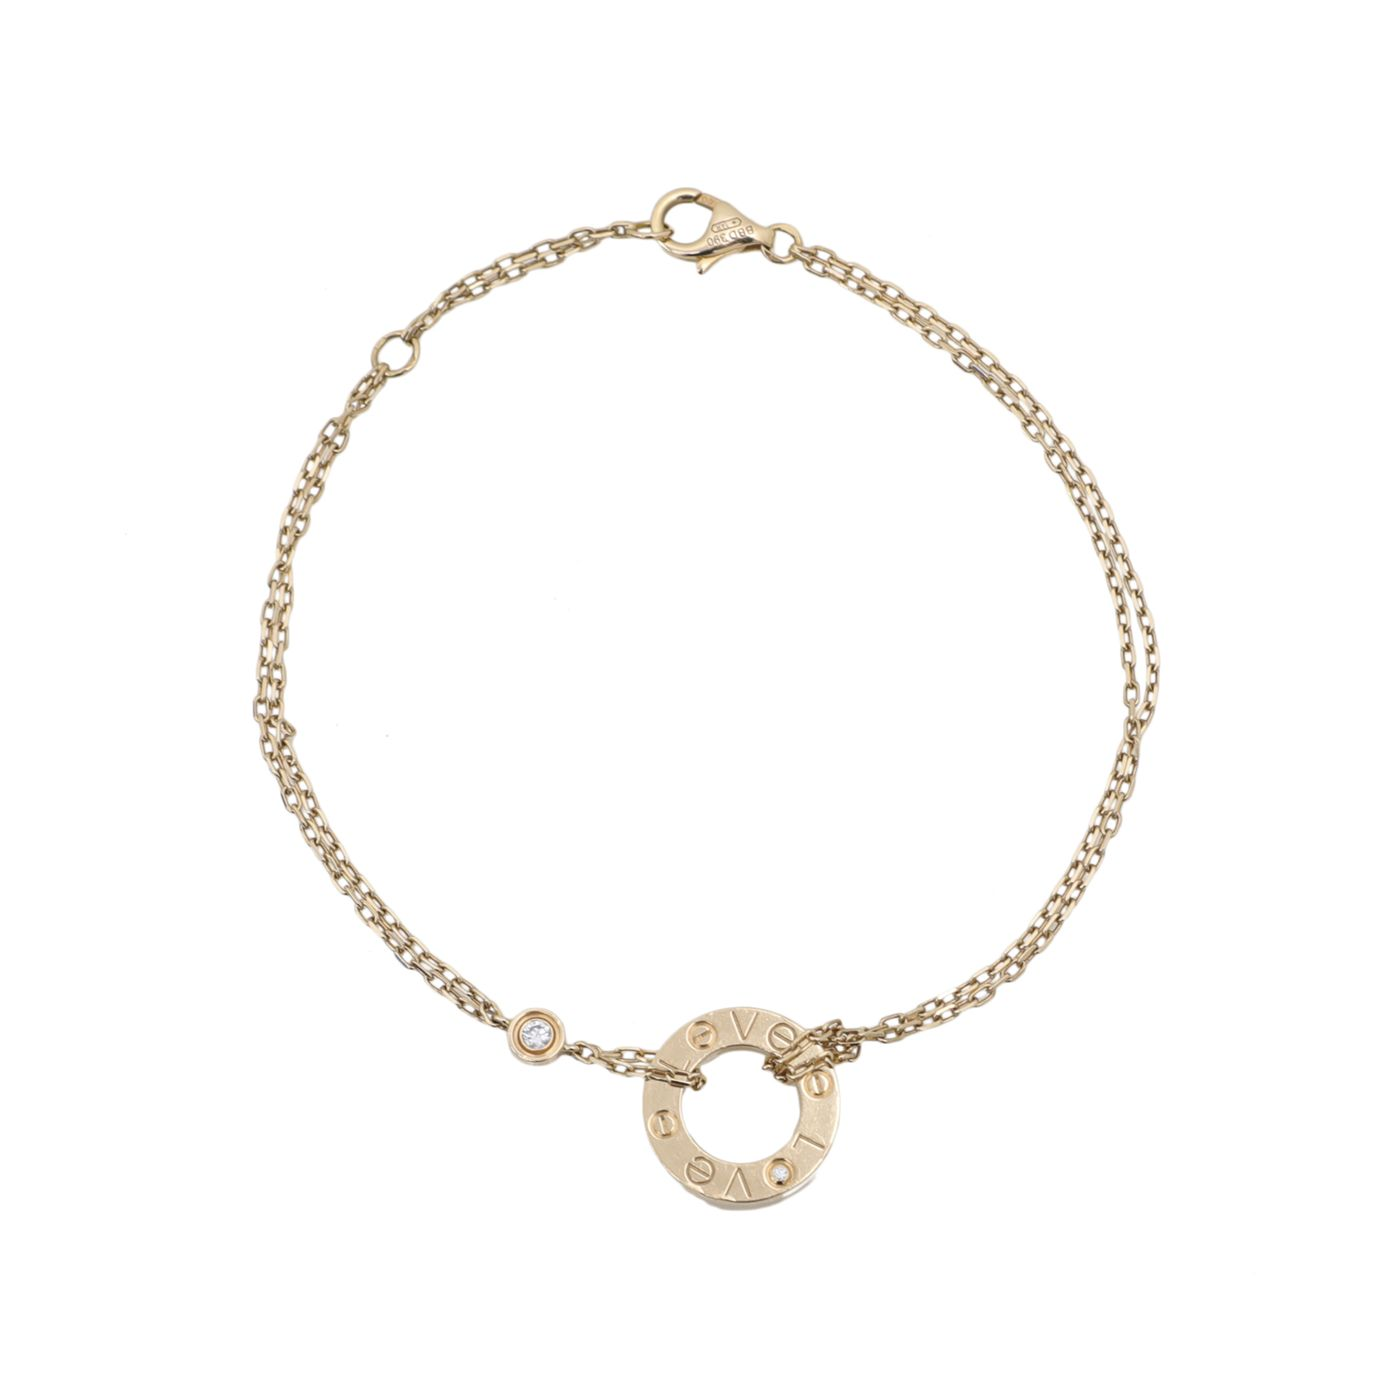 Cartier 18K Yellow Gold Diamond Love Chain Bracelet